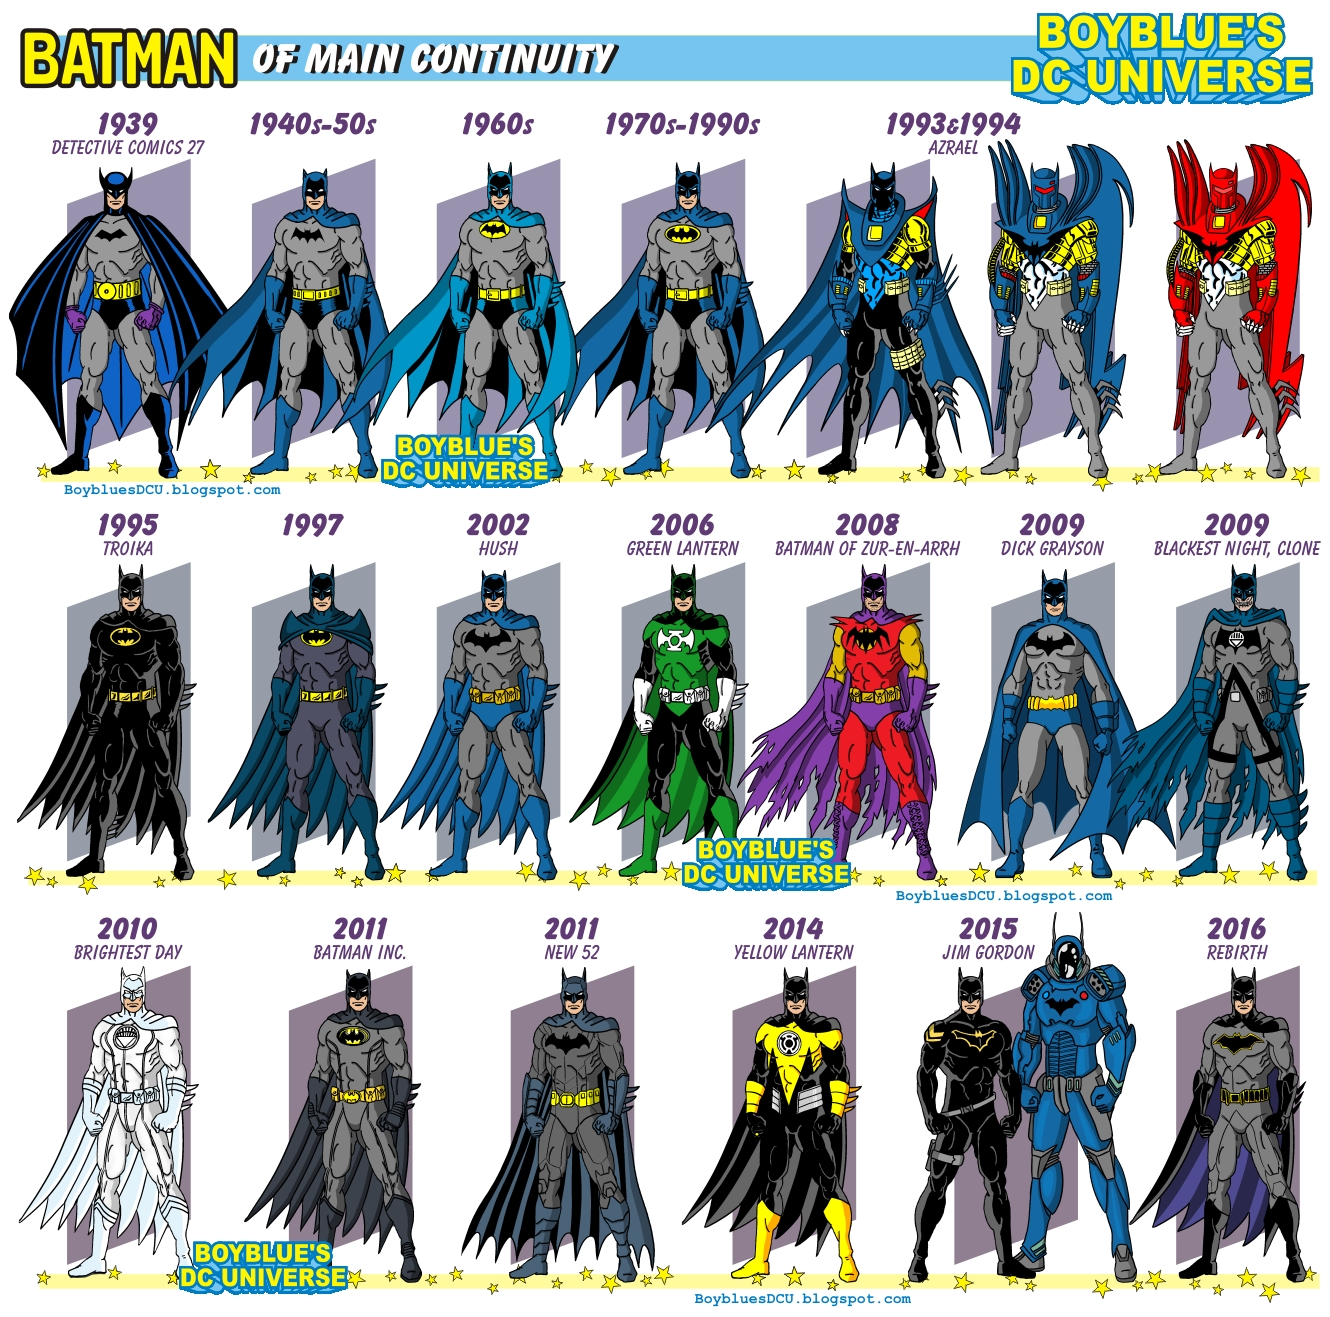 ... Batman - costume history of the main continuity by BoybluesDCU  sc 1 st  DeviantArt & Batman - costume history of the main continuity by BoybluesDCU on ...